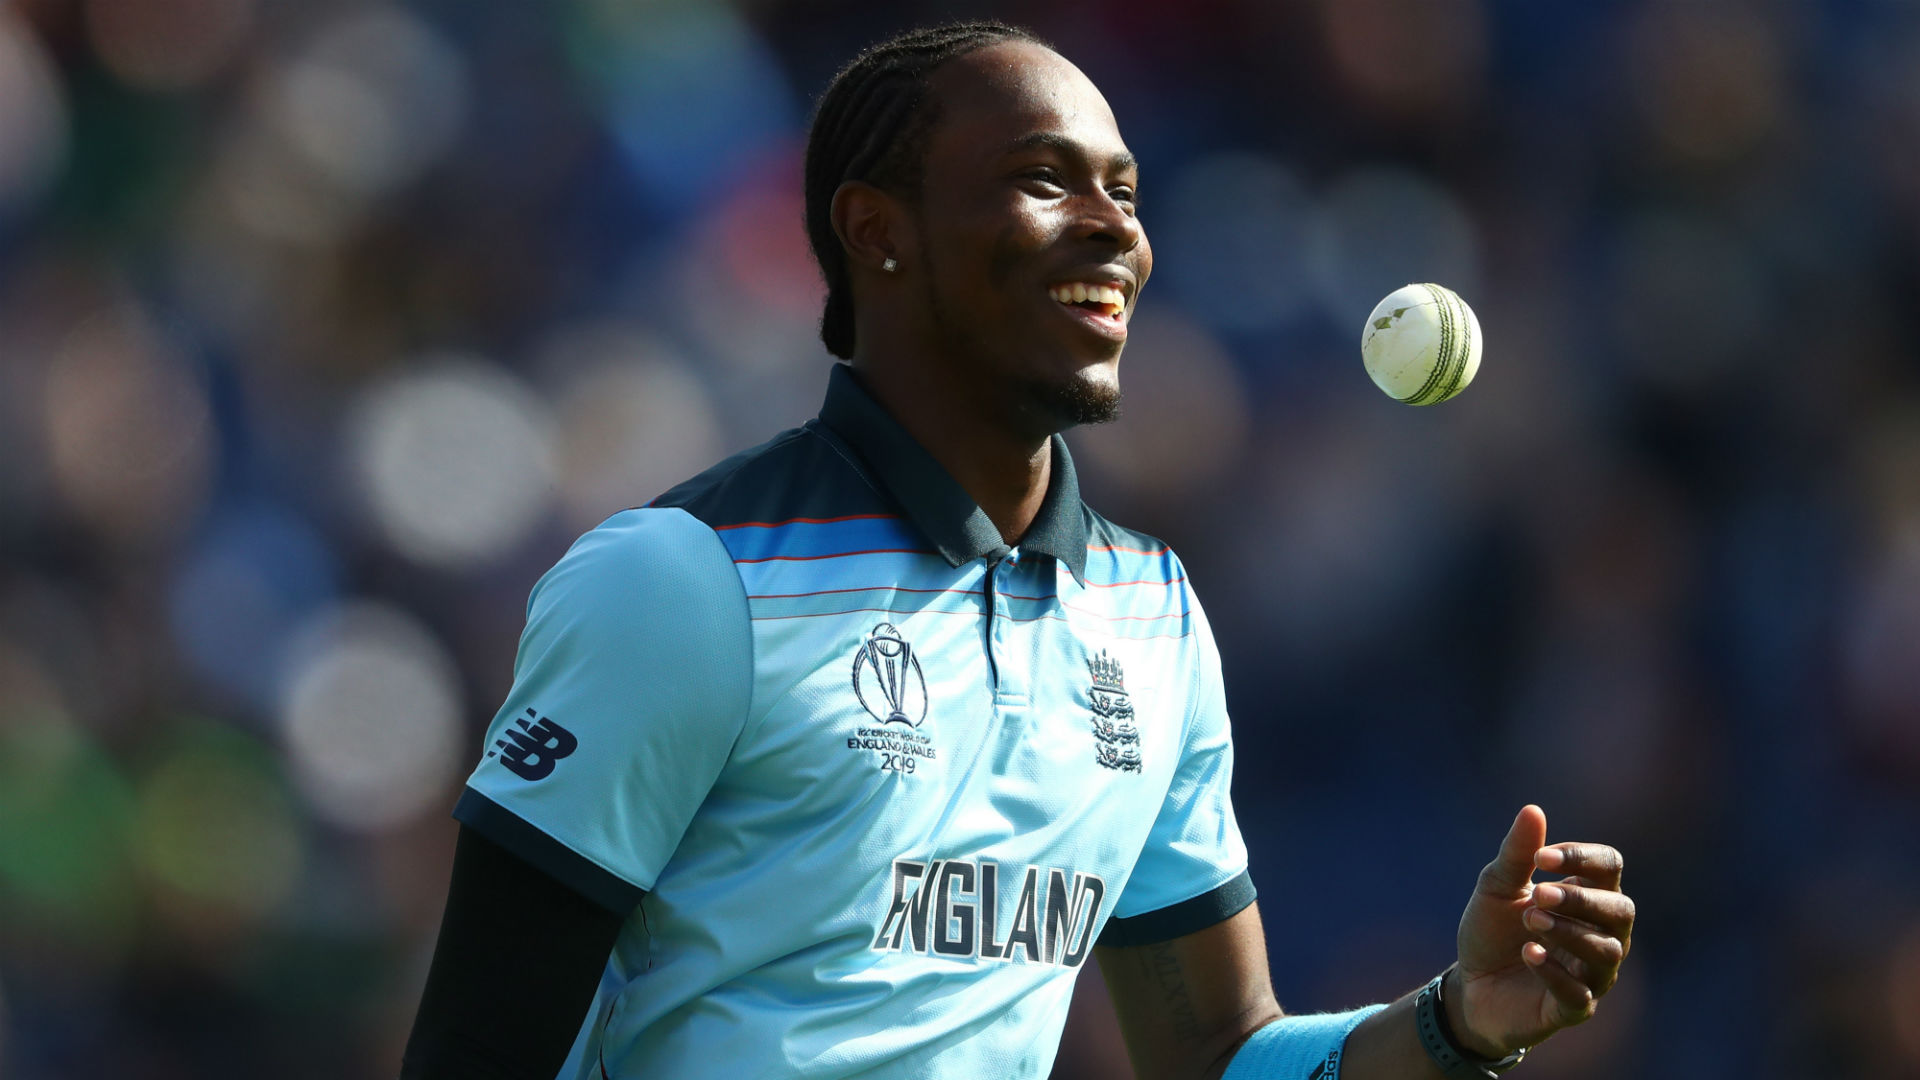 England v West Indies: All eyes on Archer in World Cup duel